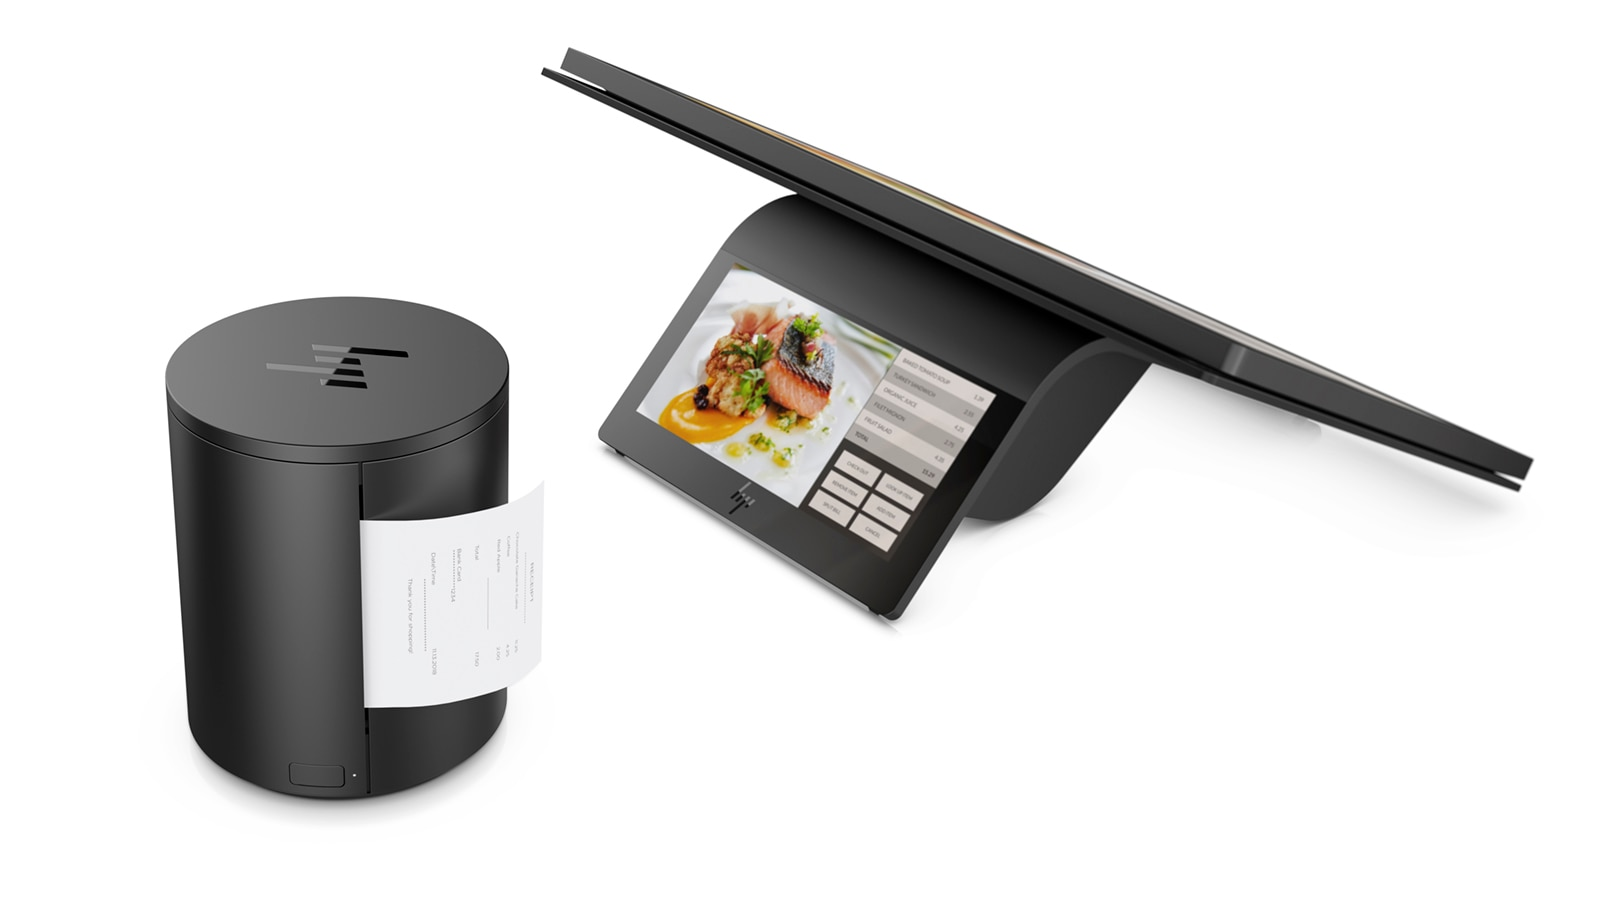 HP Engage One Prime with HP USB Thermal Printer printing a receipt